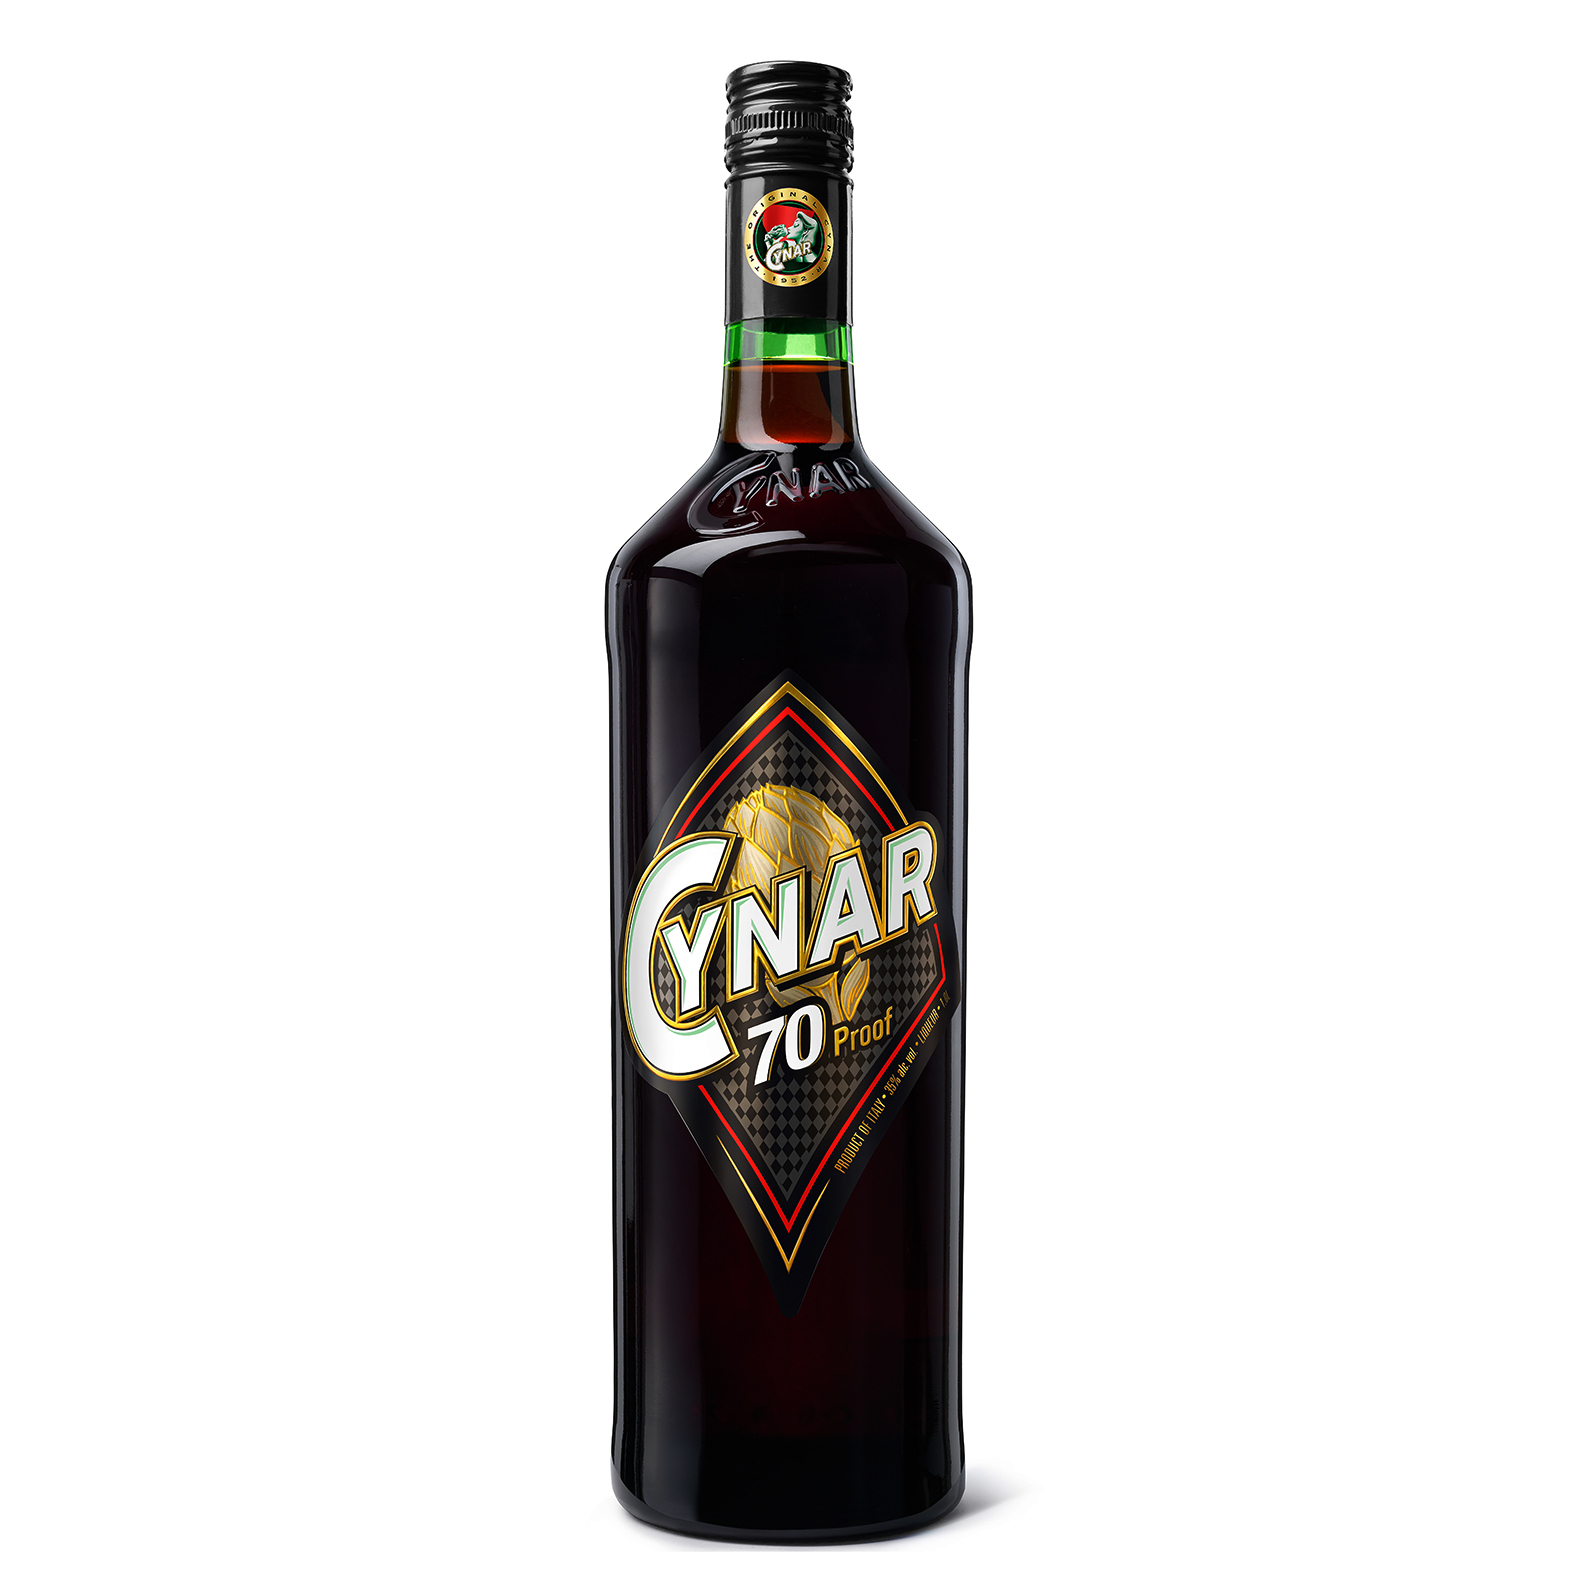 Cynar 70 Proof - 100cl - Aperitivi & Bitter - Campari